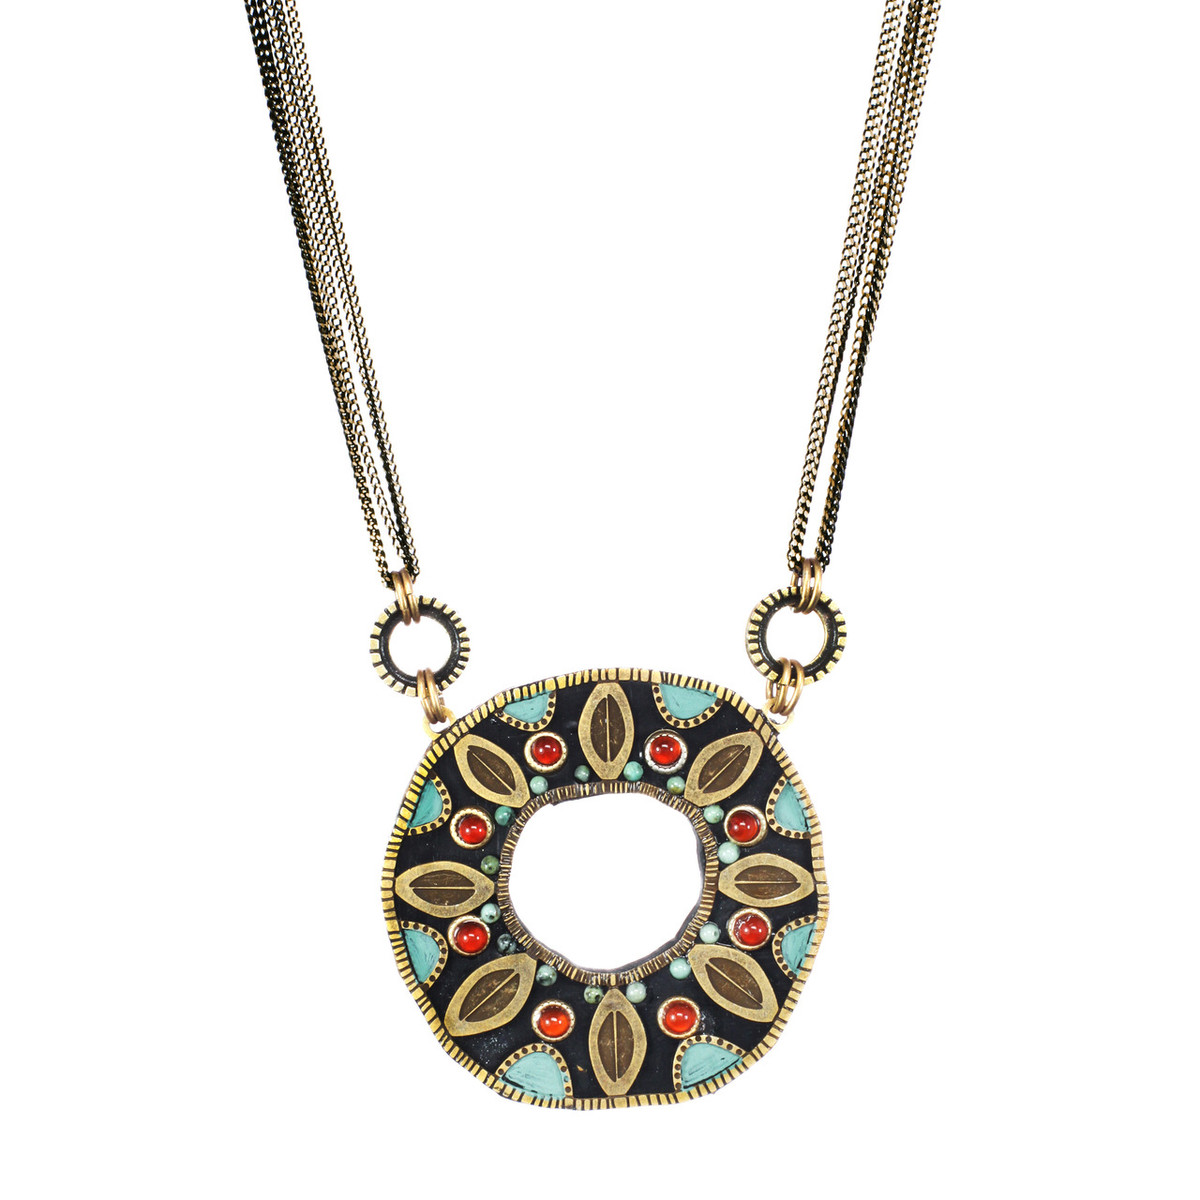 Teal Michal Golan Jewelry Large Open Circle Necklace